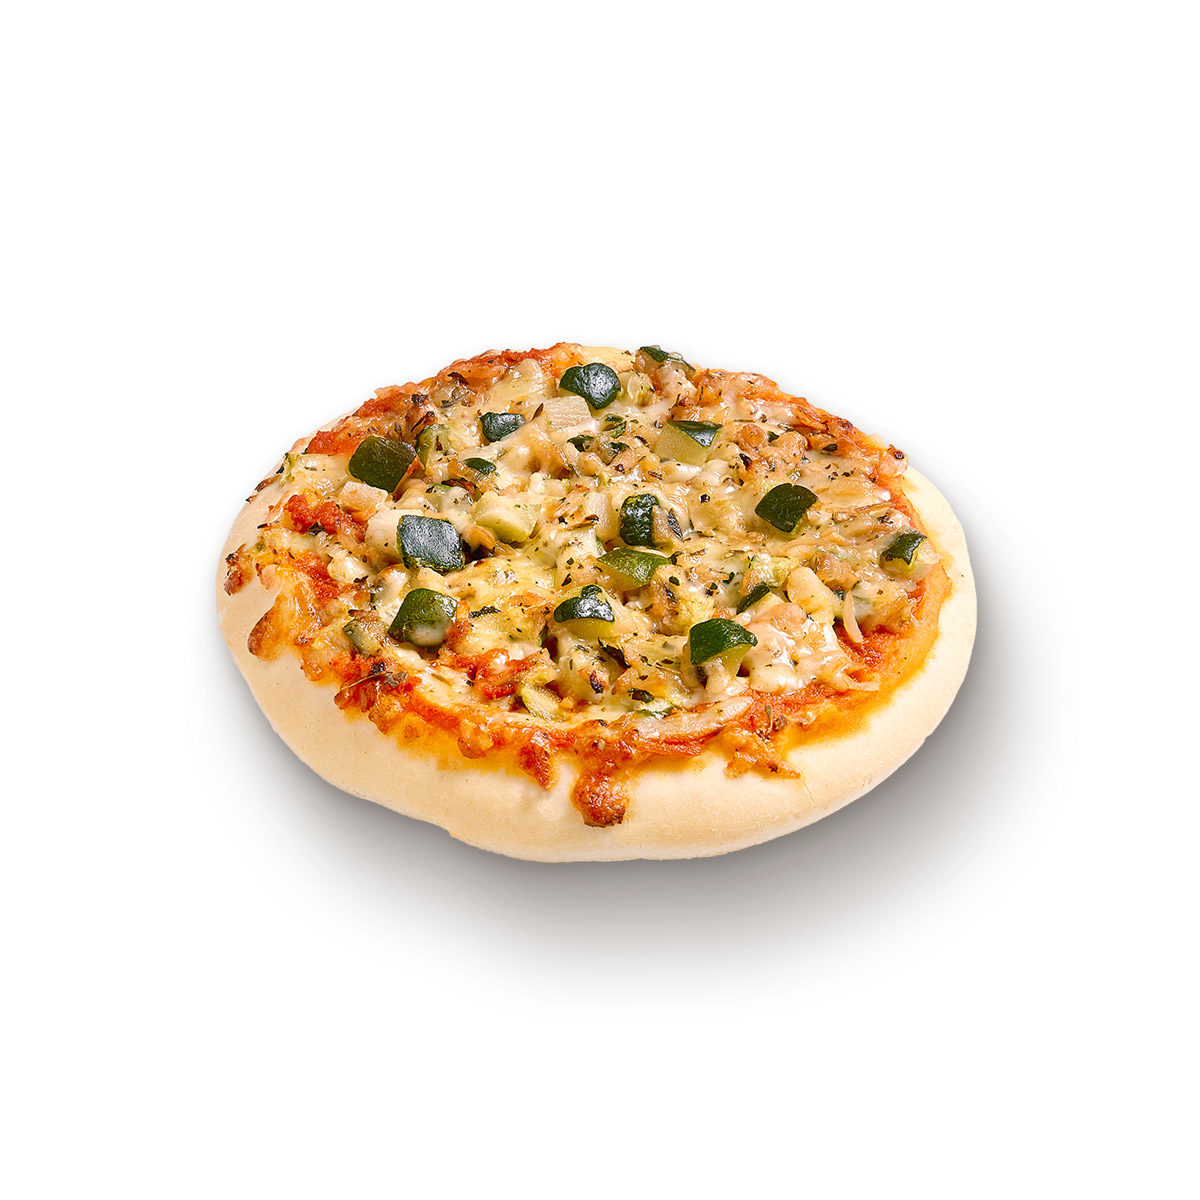 Courgette, cheese and onion pizza